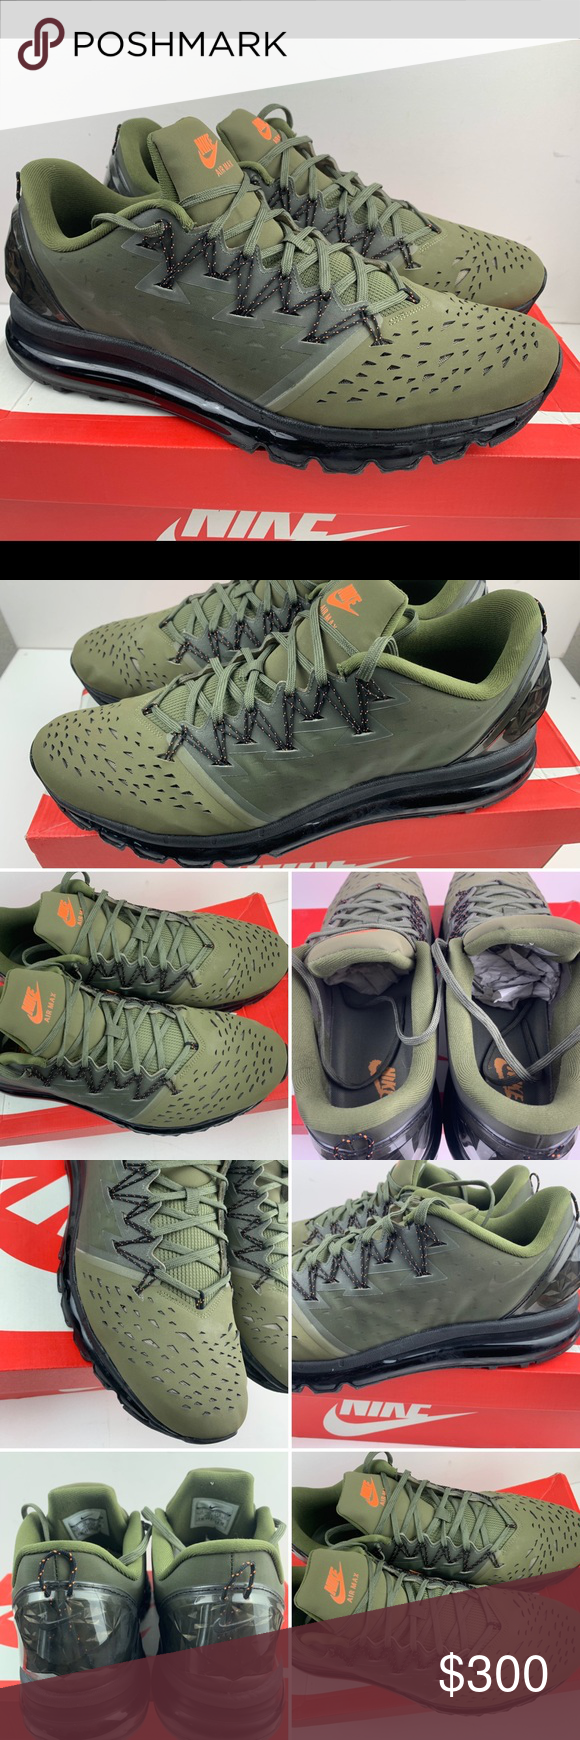 Details about Nike Air Max PacFly Mens Sneakers RARE Olive